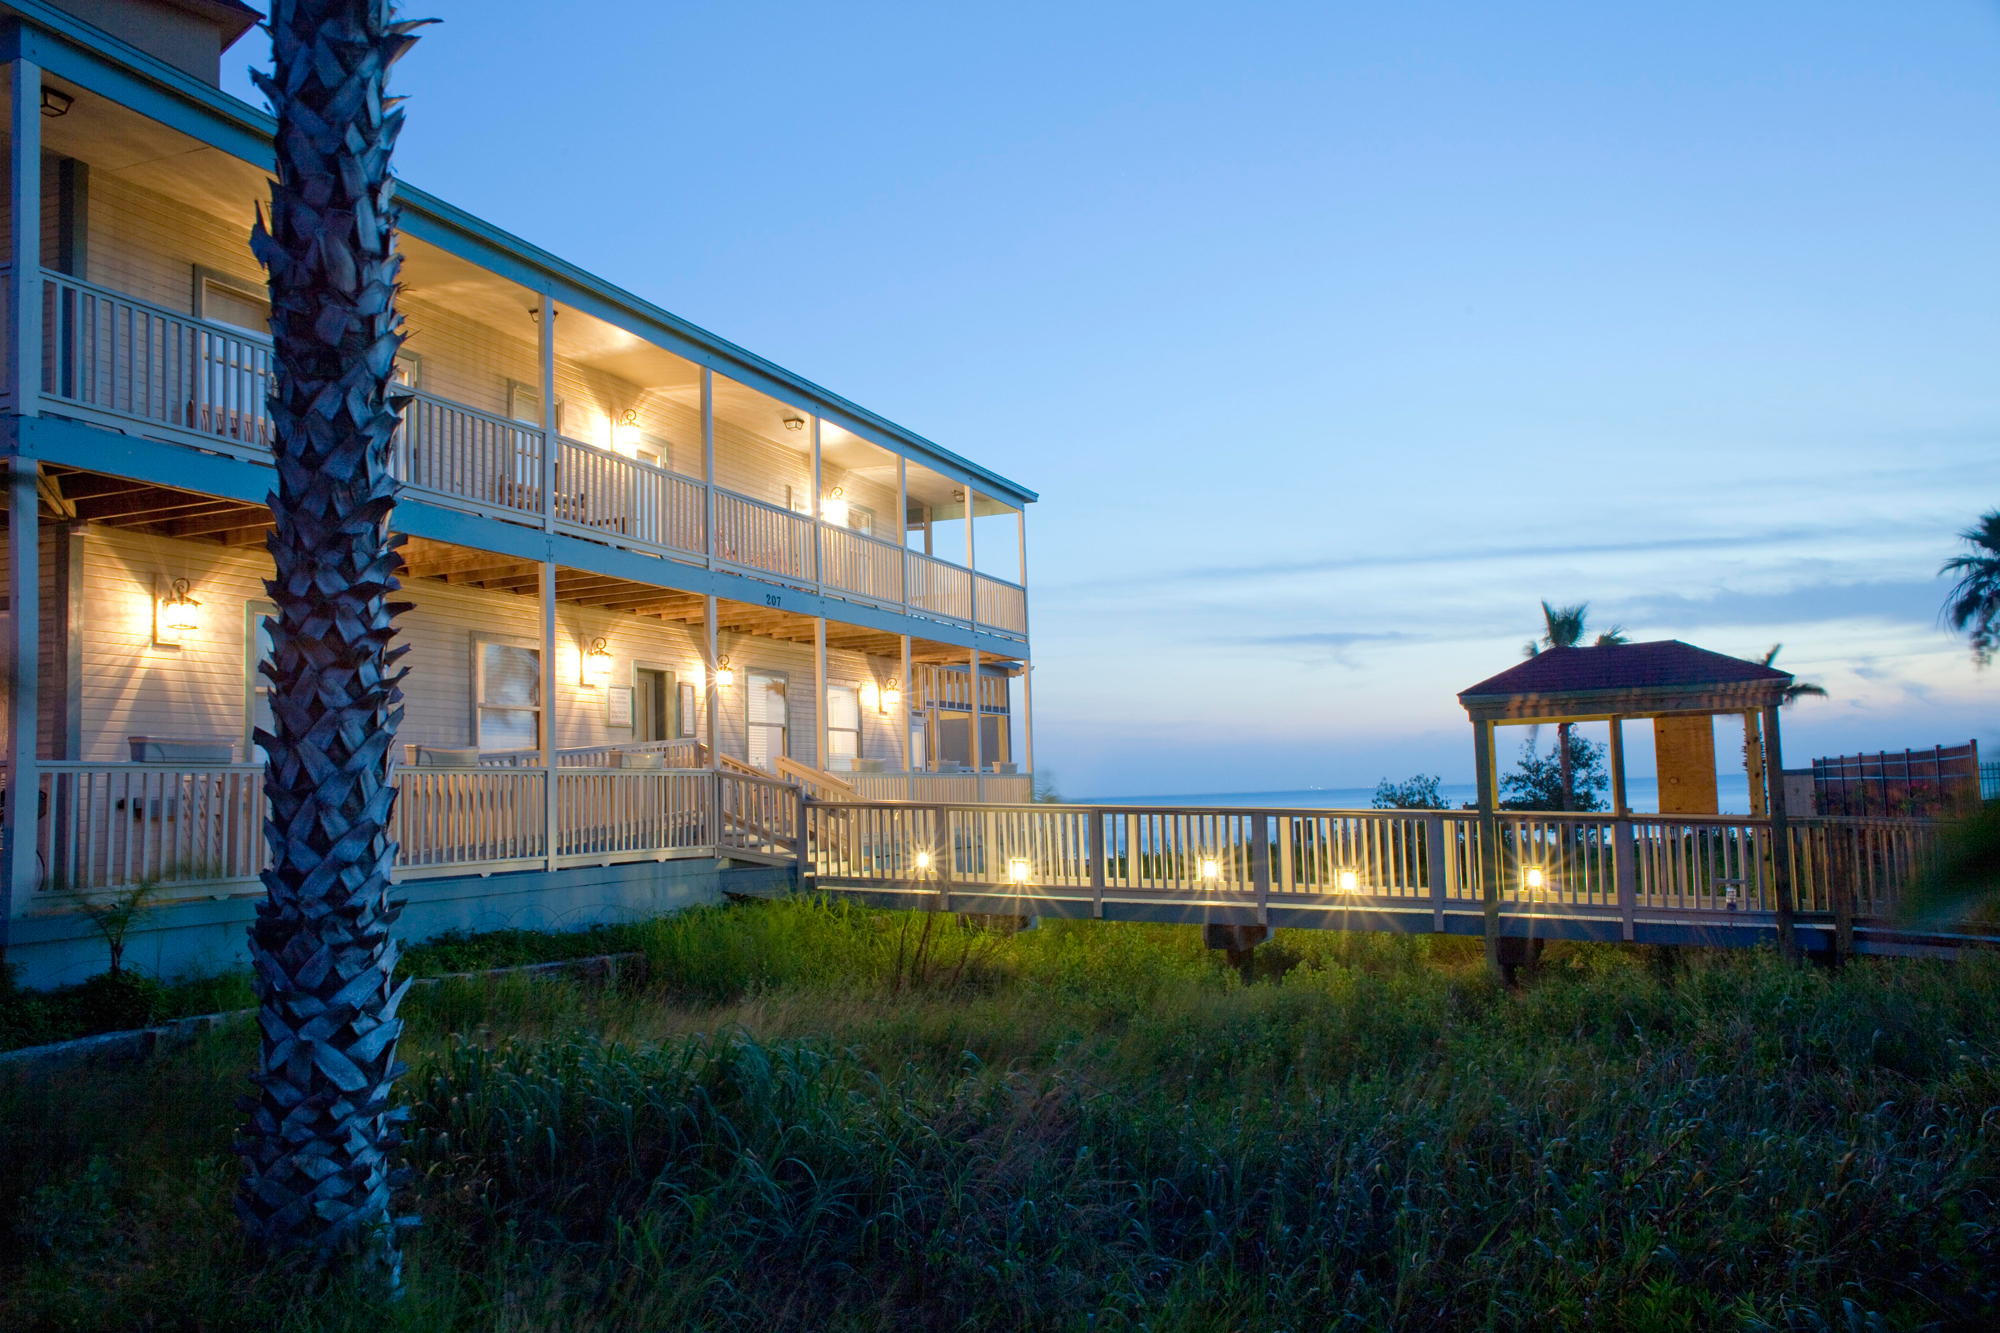 South padre island coupons discounts